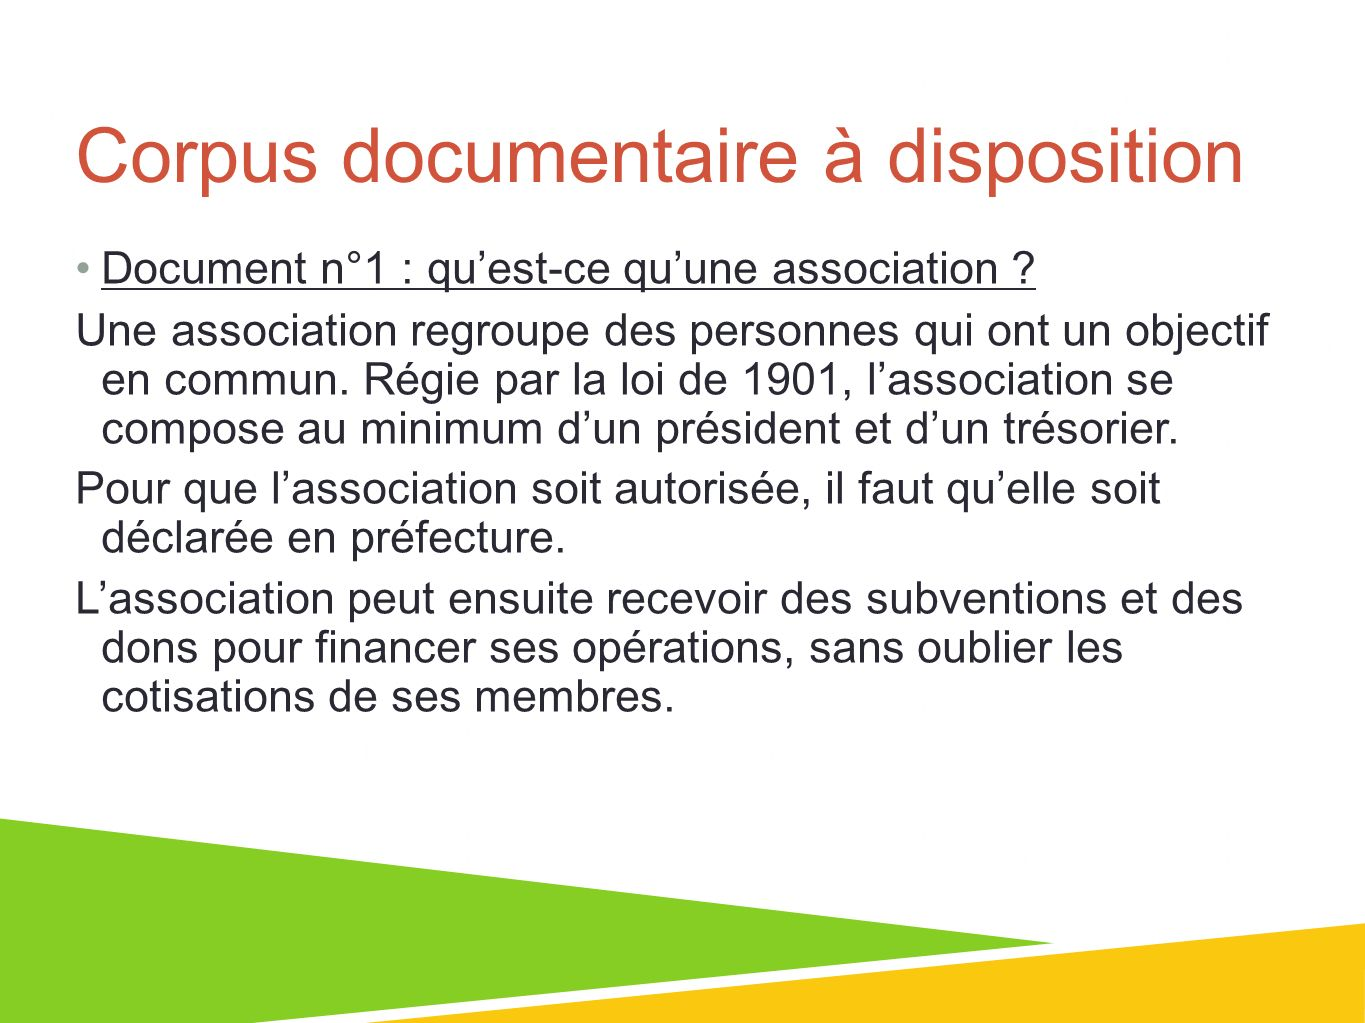 Corpus documentaire à disposition Document n°1 : quest-ce quune association ? Une association regroupe des personnes qui ont un objectif en commun. Ré